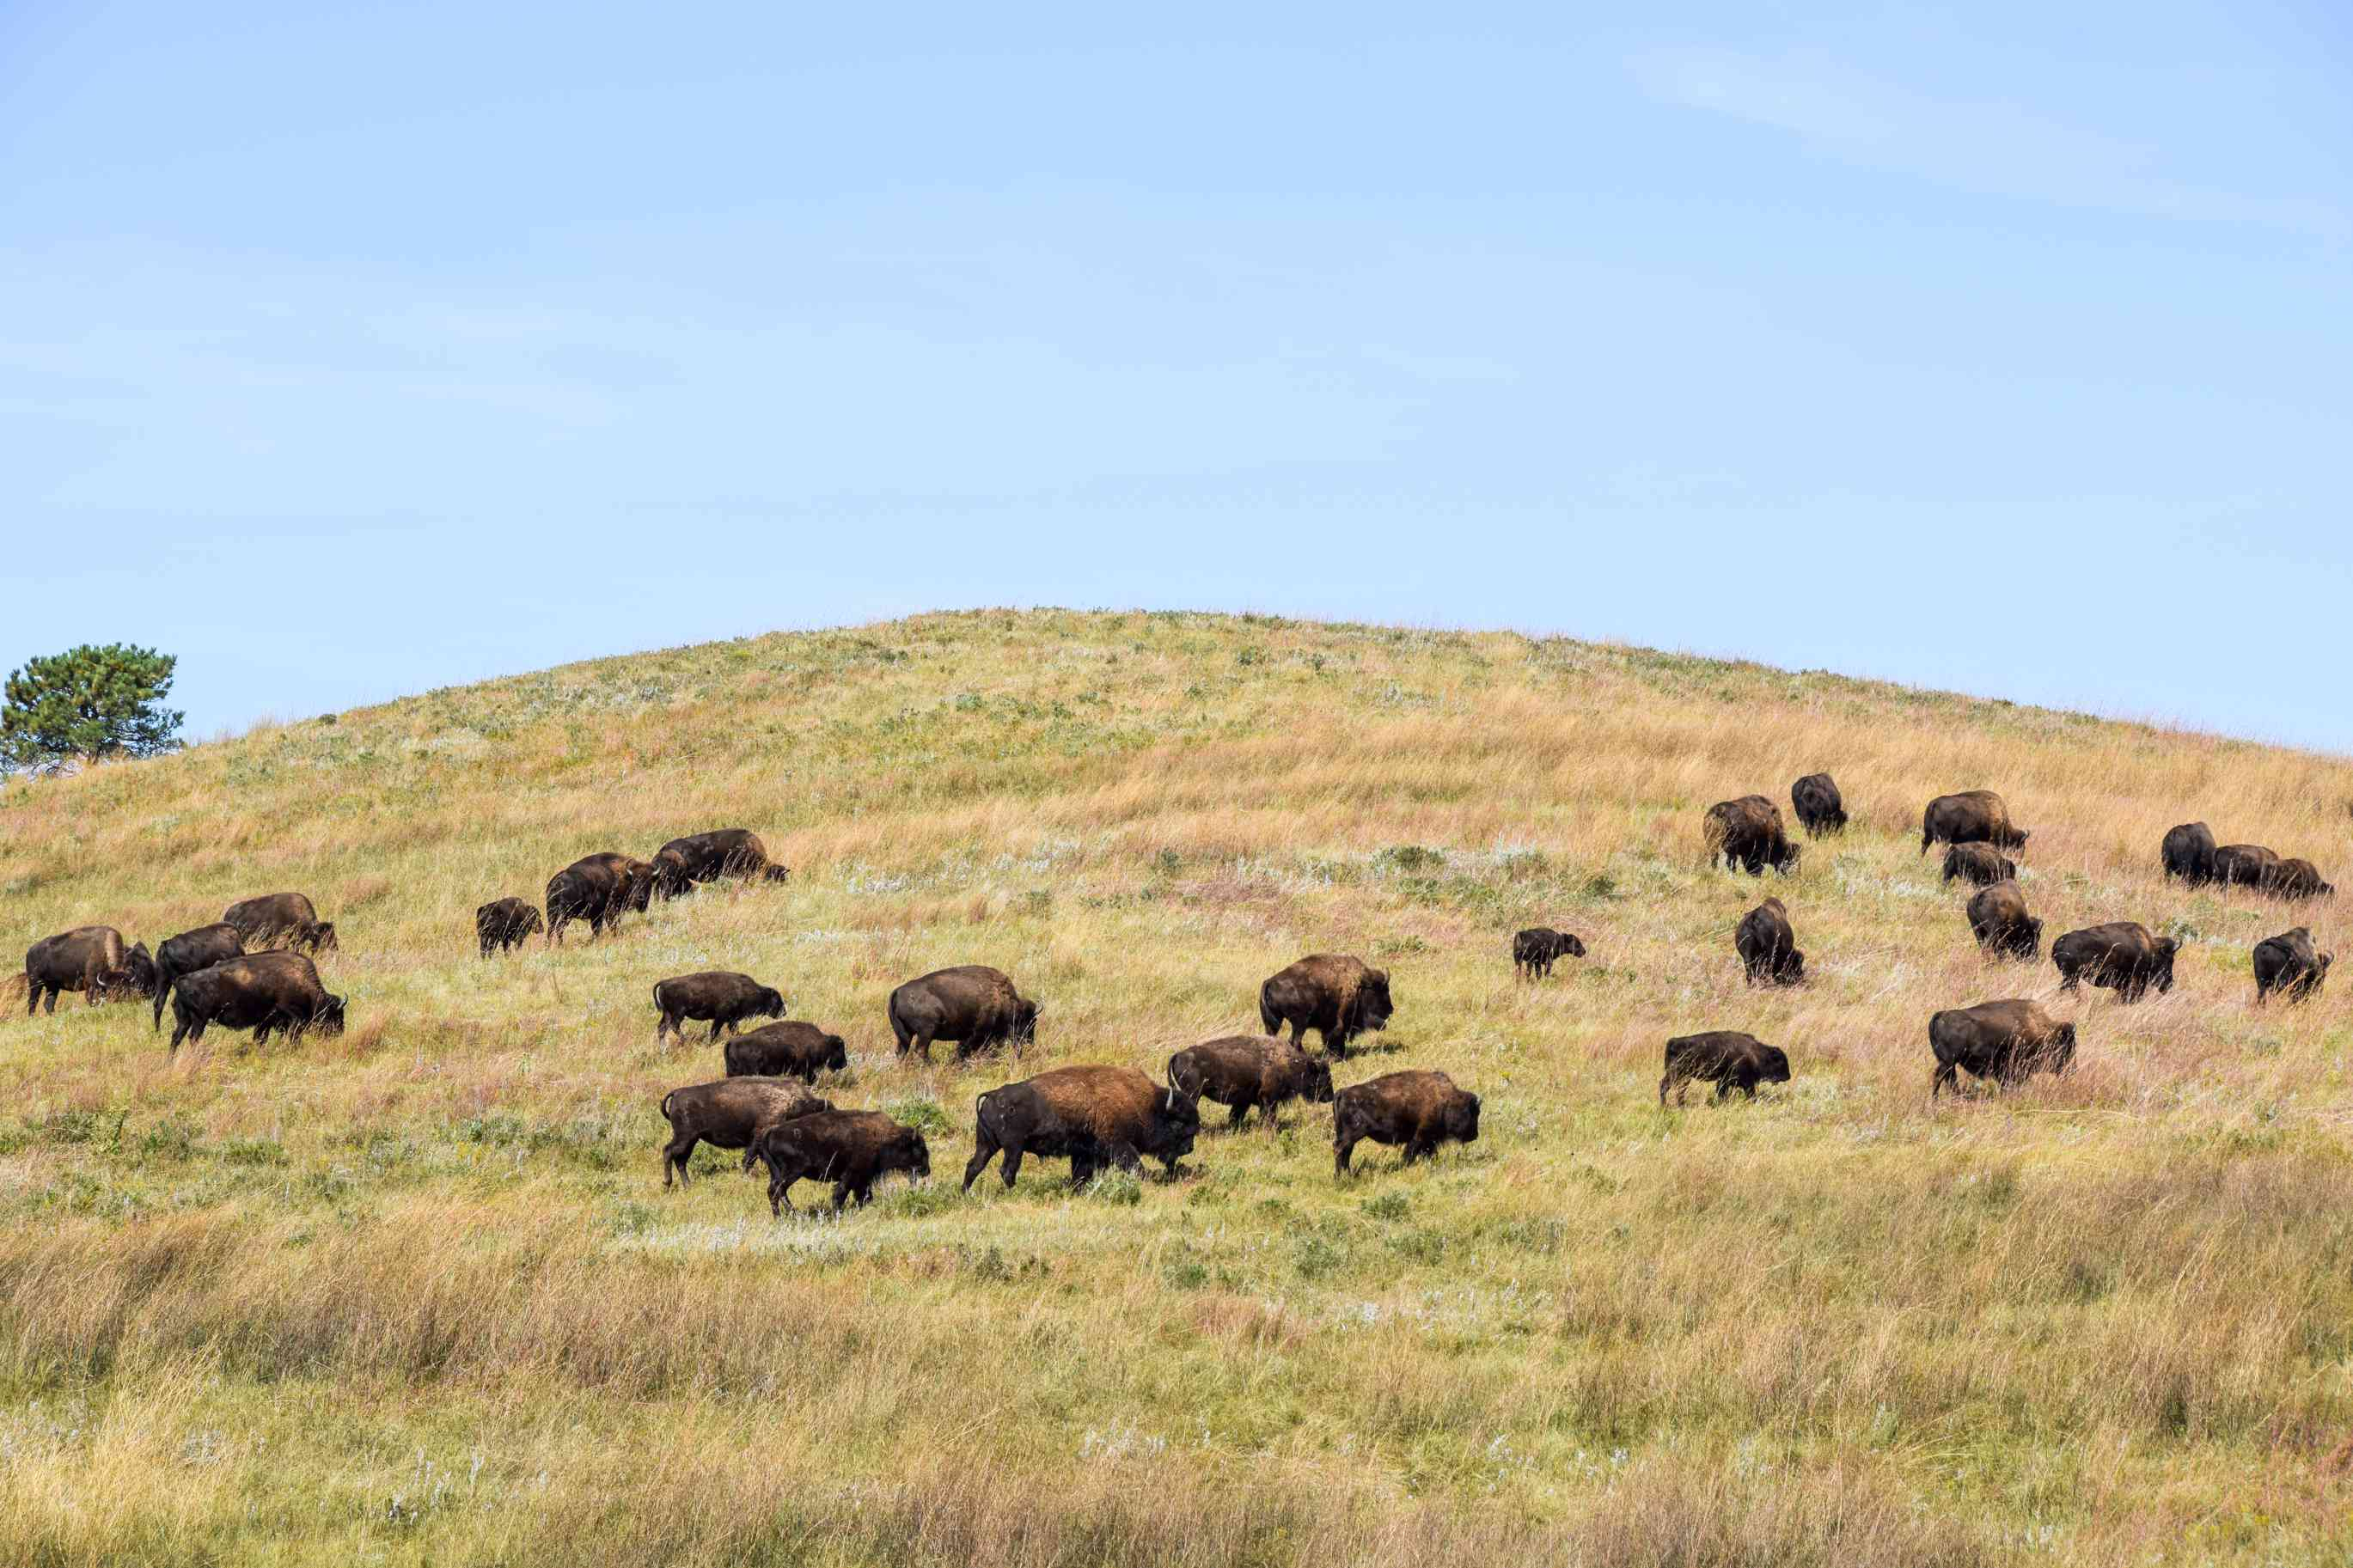 Buffalo in Custer State Park